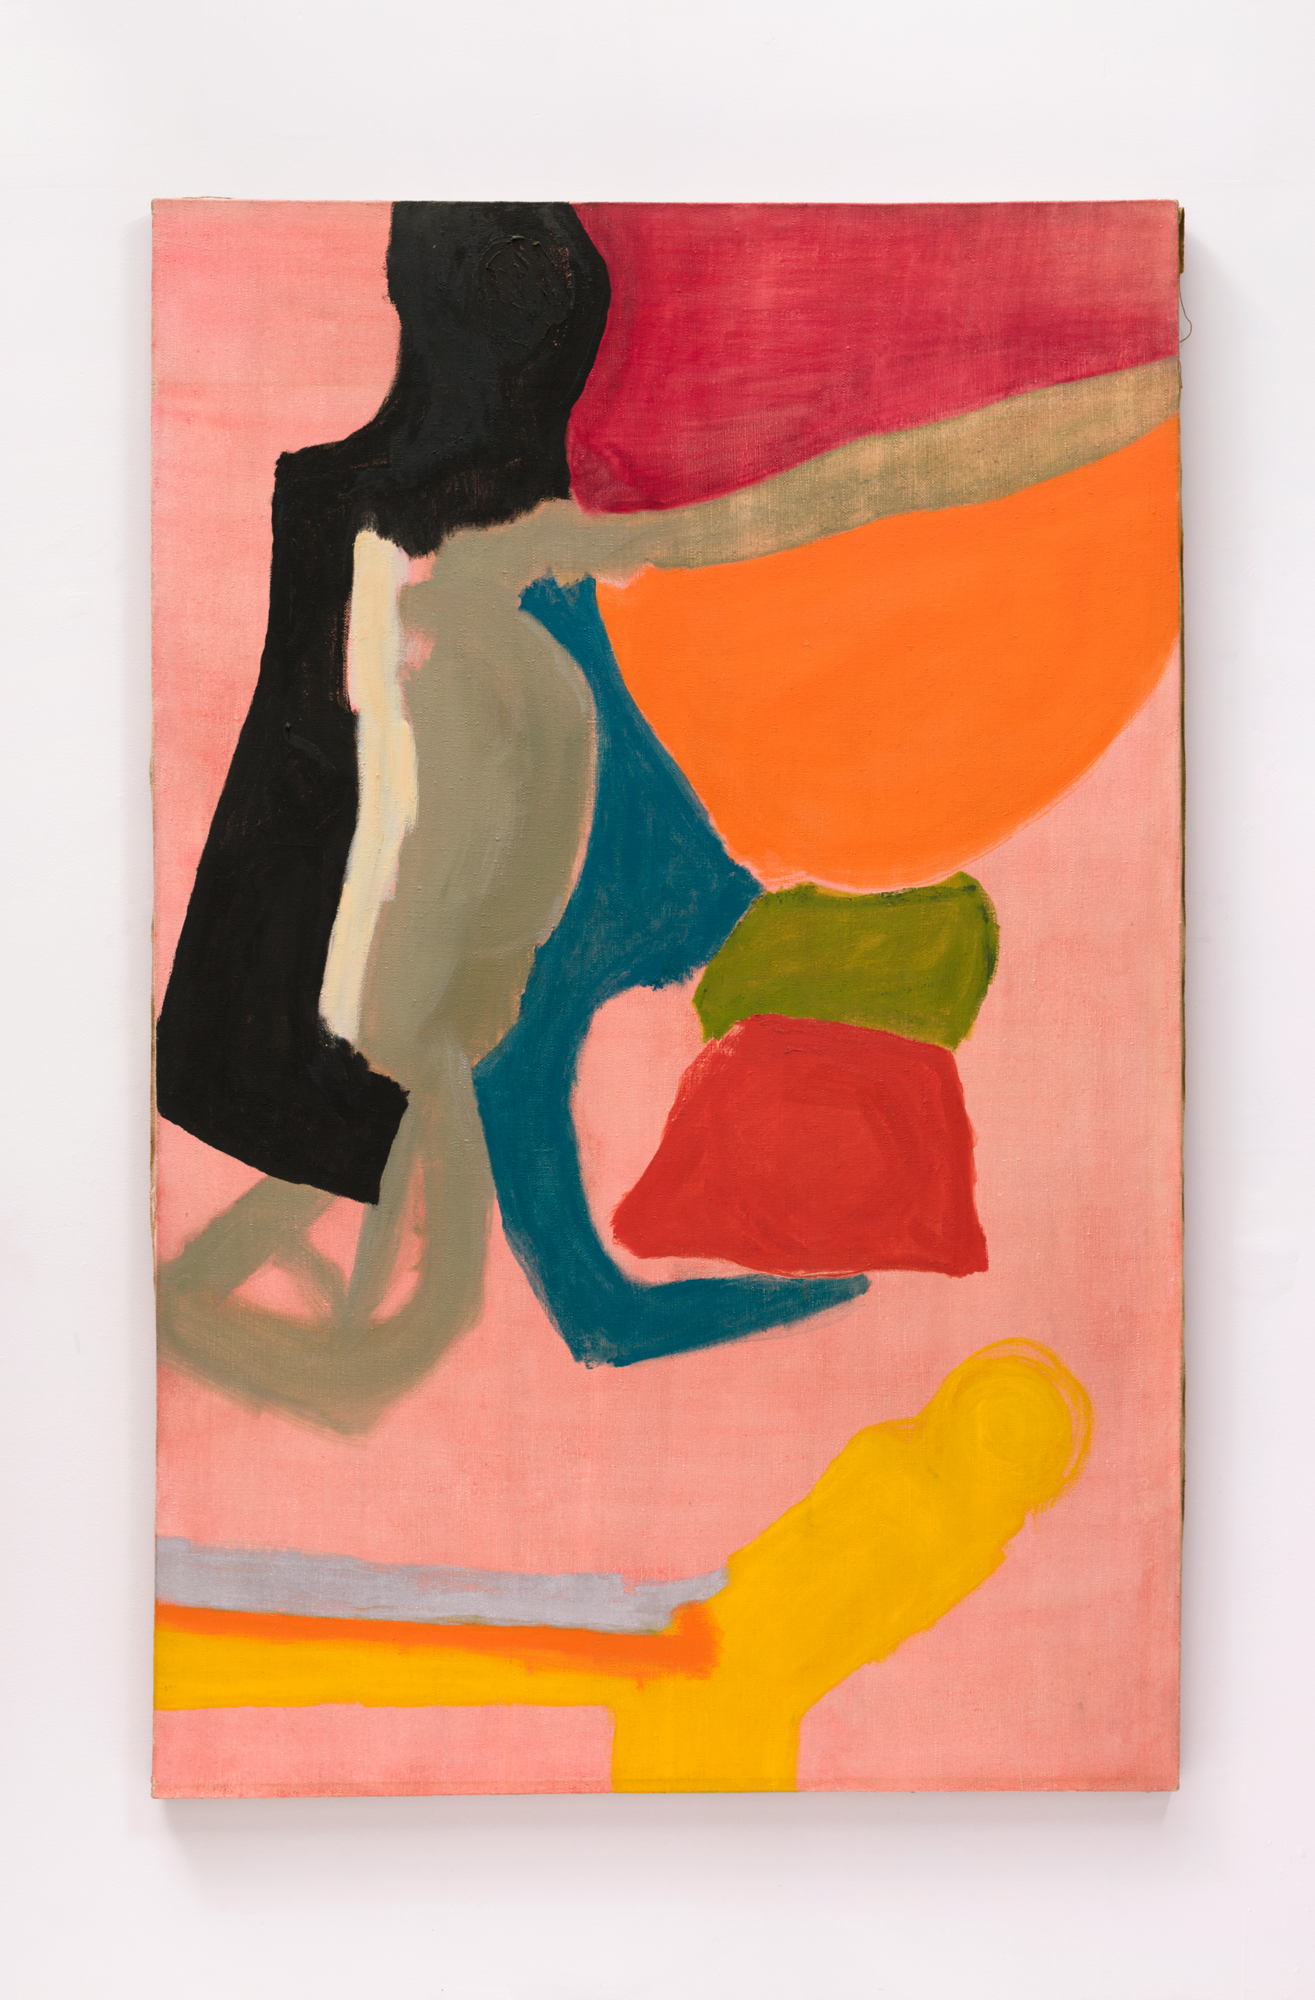 Virginia Holt, not titled, circa 1970 oil on linen, 78 × 50 inches (198.12 × 127.00 cm)